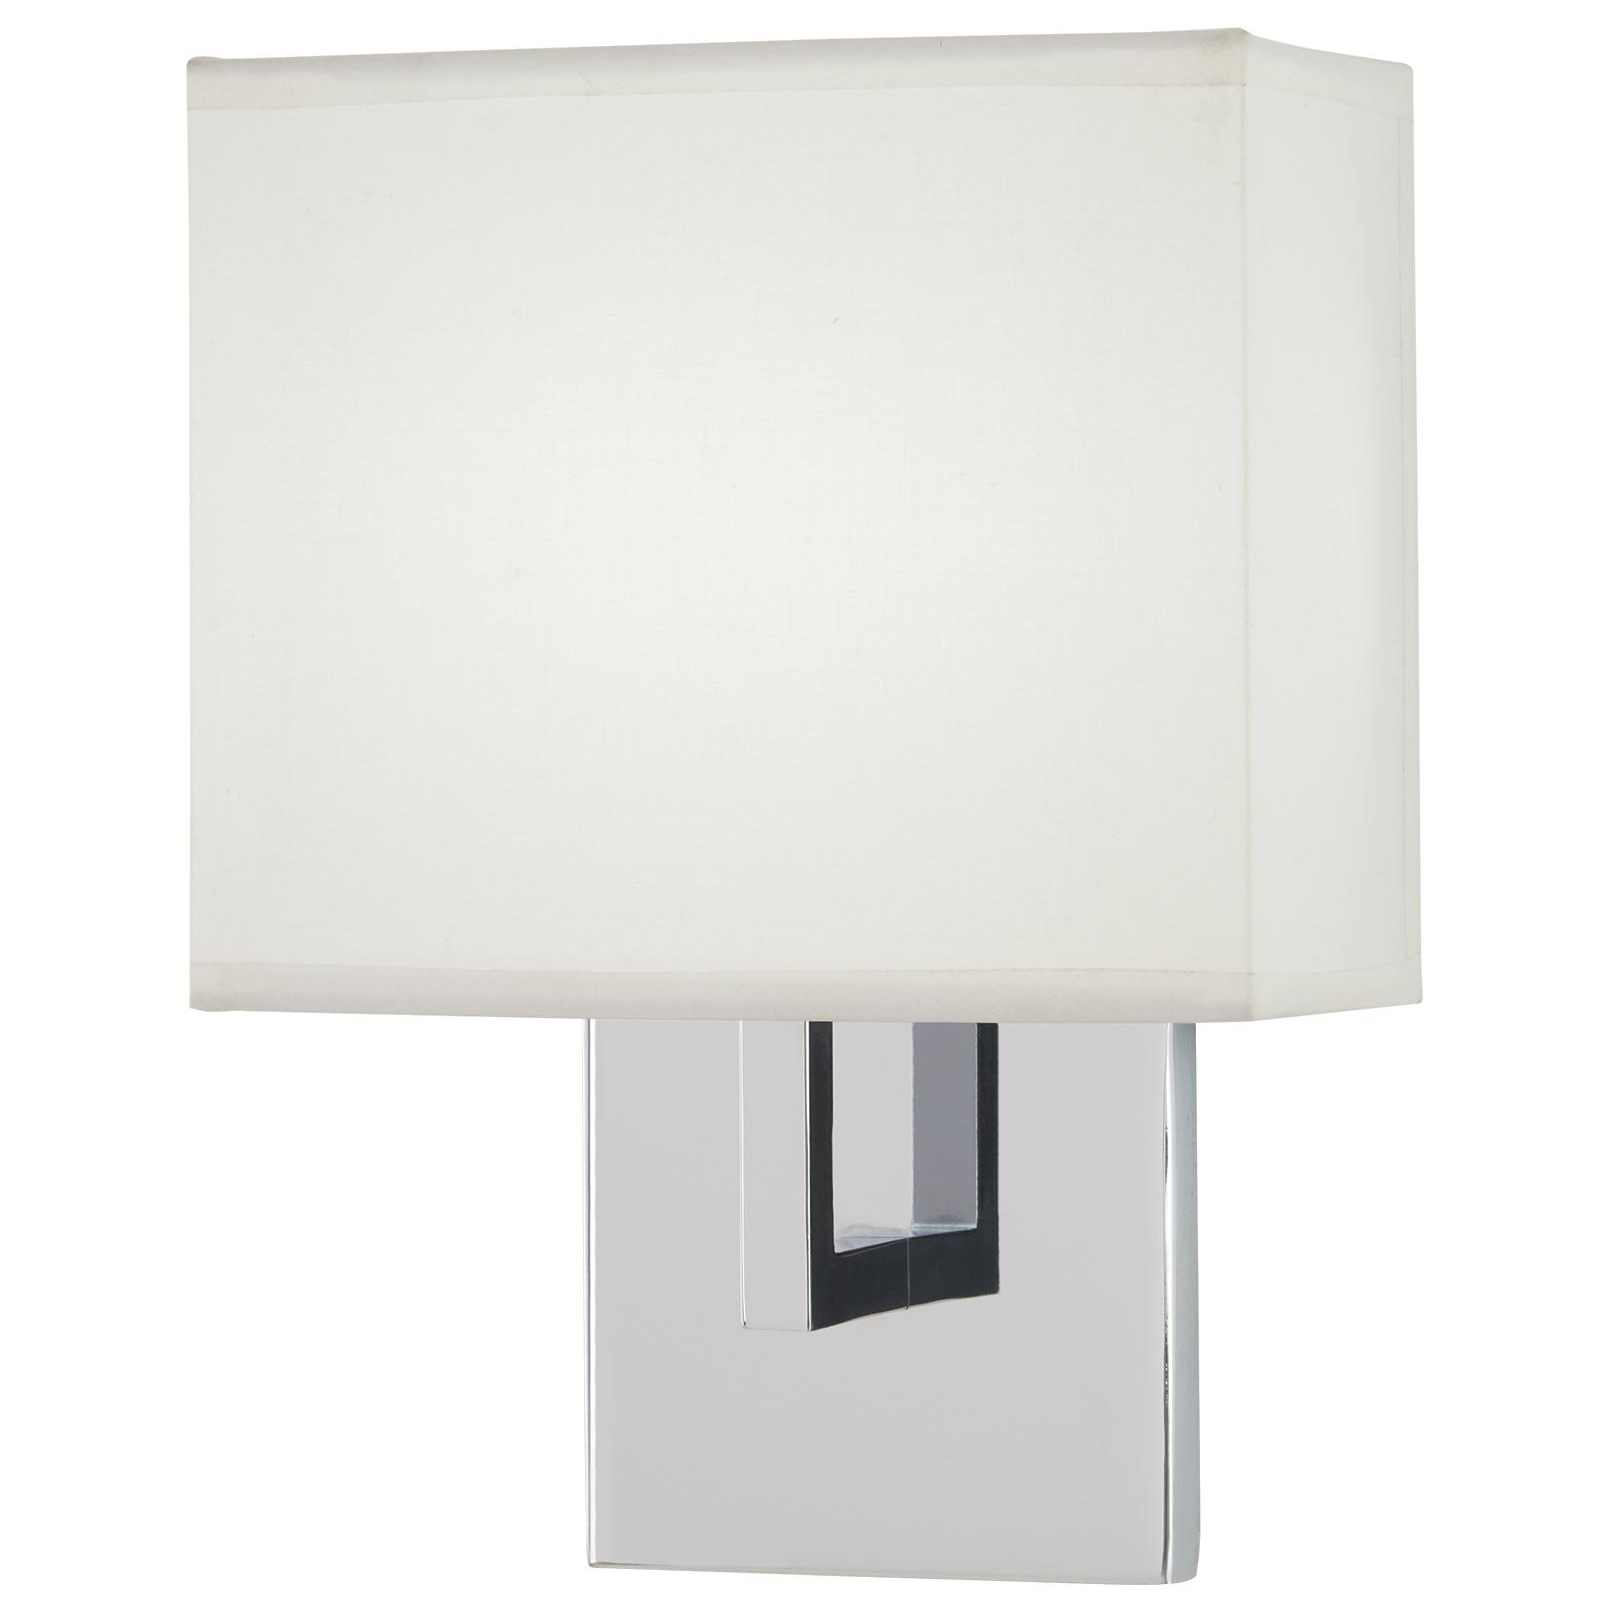 P470 led wall sconce by george kovacs p470 077 l